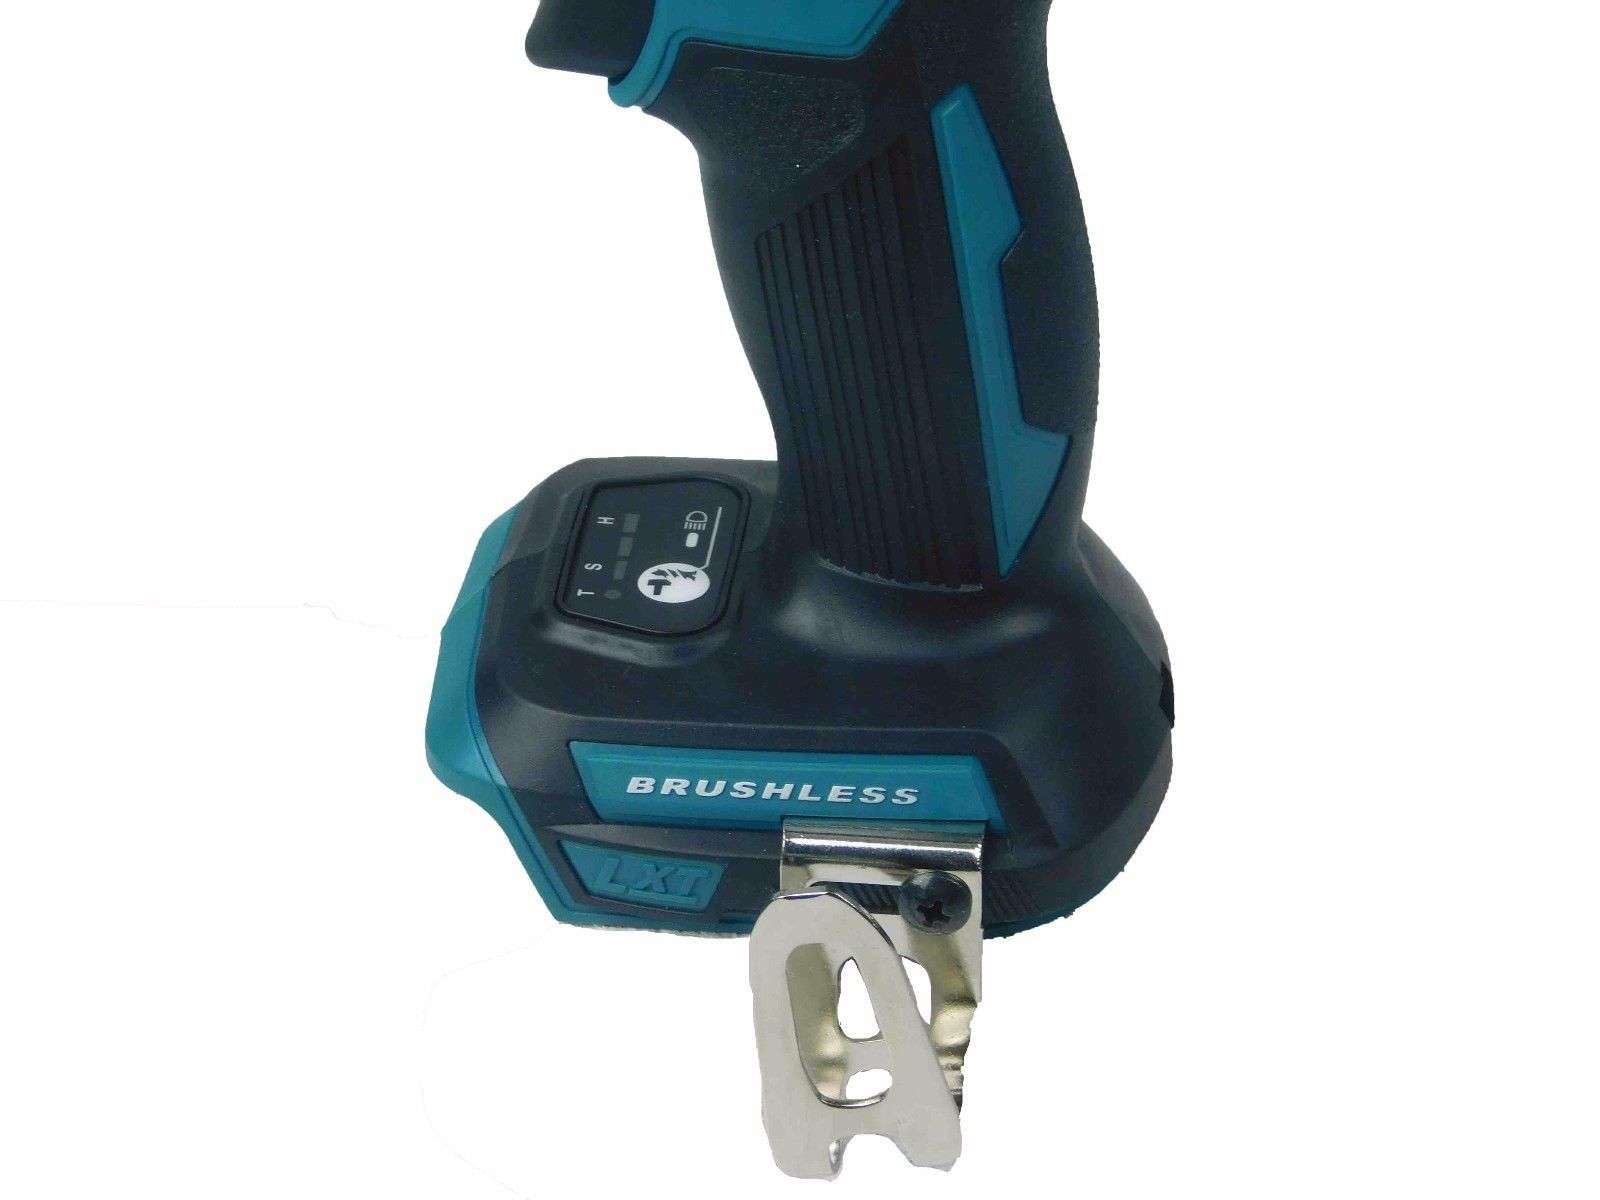 Makita-XDT14Z-18V-LXT-1-4-3-Speed-Brushless-Impact-Driver-Bare-Tool-image-4